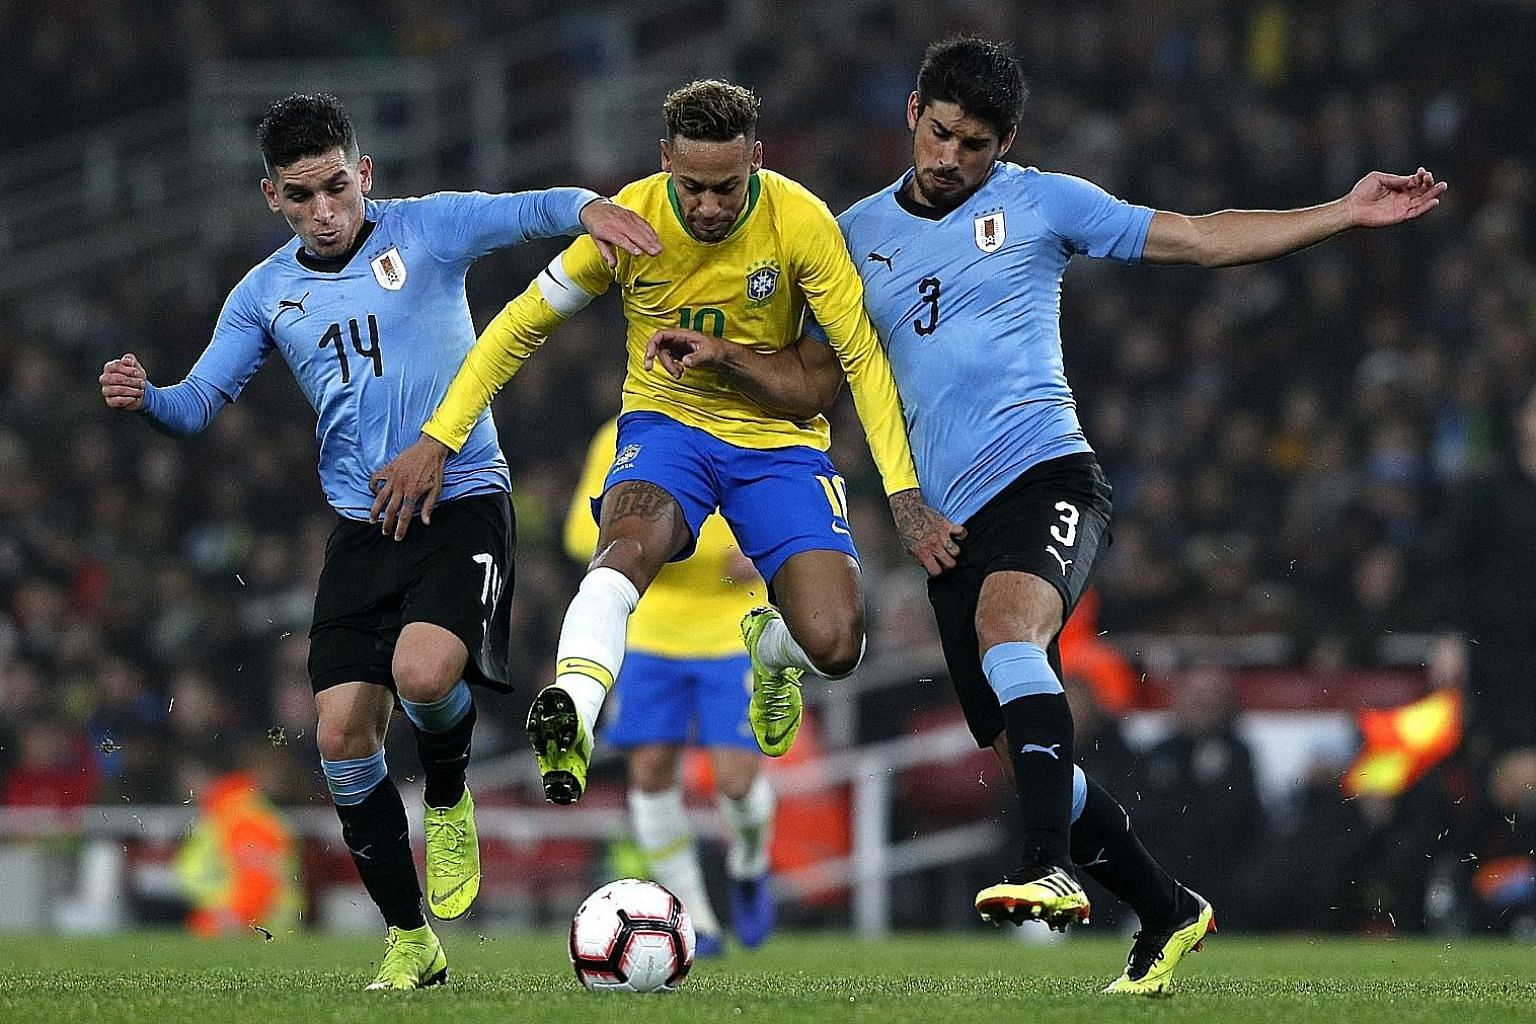 Brazil striker Neymar finding himself sandwiched between Uruguay's Lucas Torreira (left) and Bruno Mendez during their friendly at London's Emirates Stadium on Friday. Neymar scored from the penalty spot for his 60th international goal.